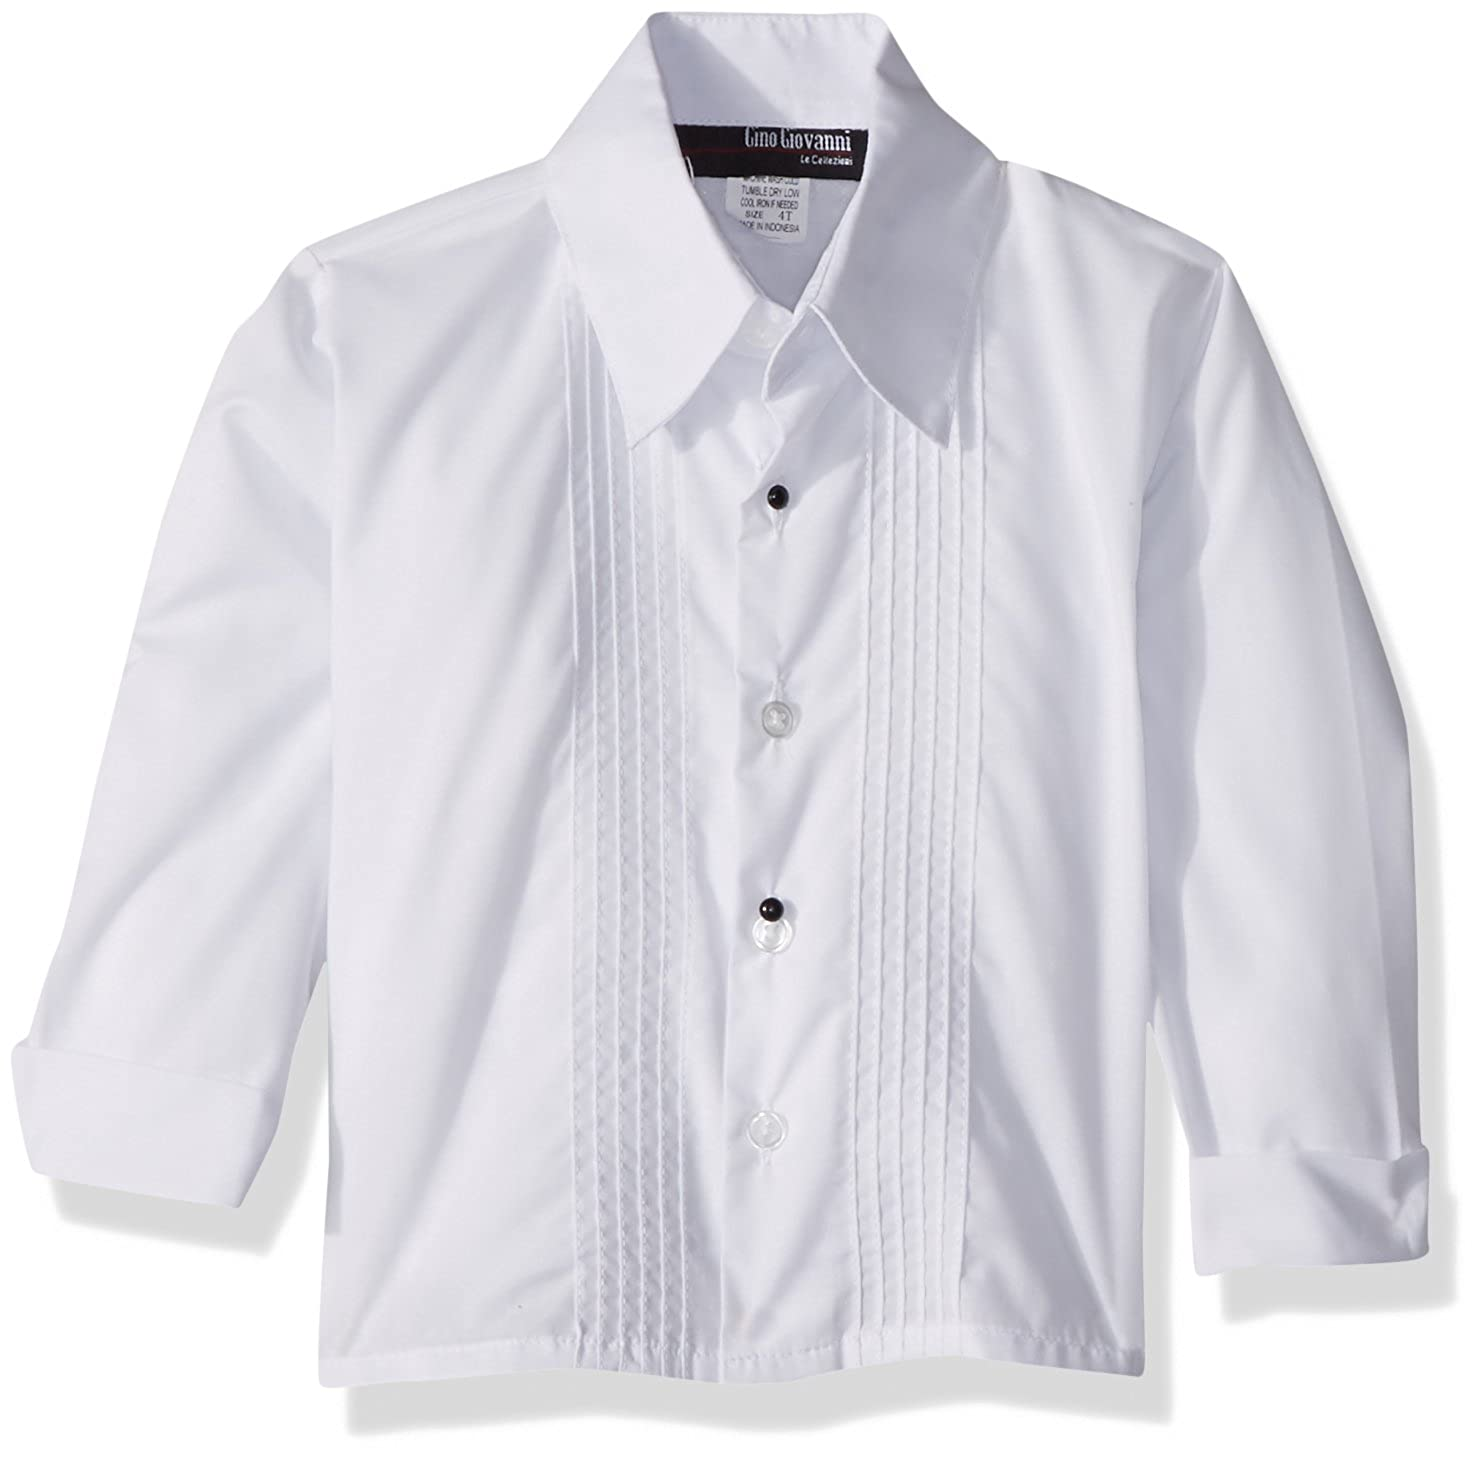 Gino Giovanni Boys Formal Long Sleeve Tuxedo Shirt